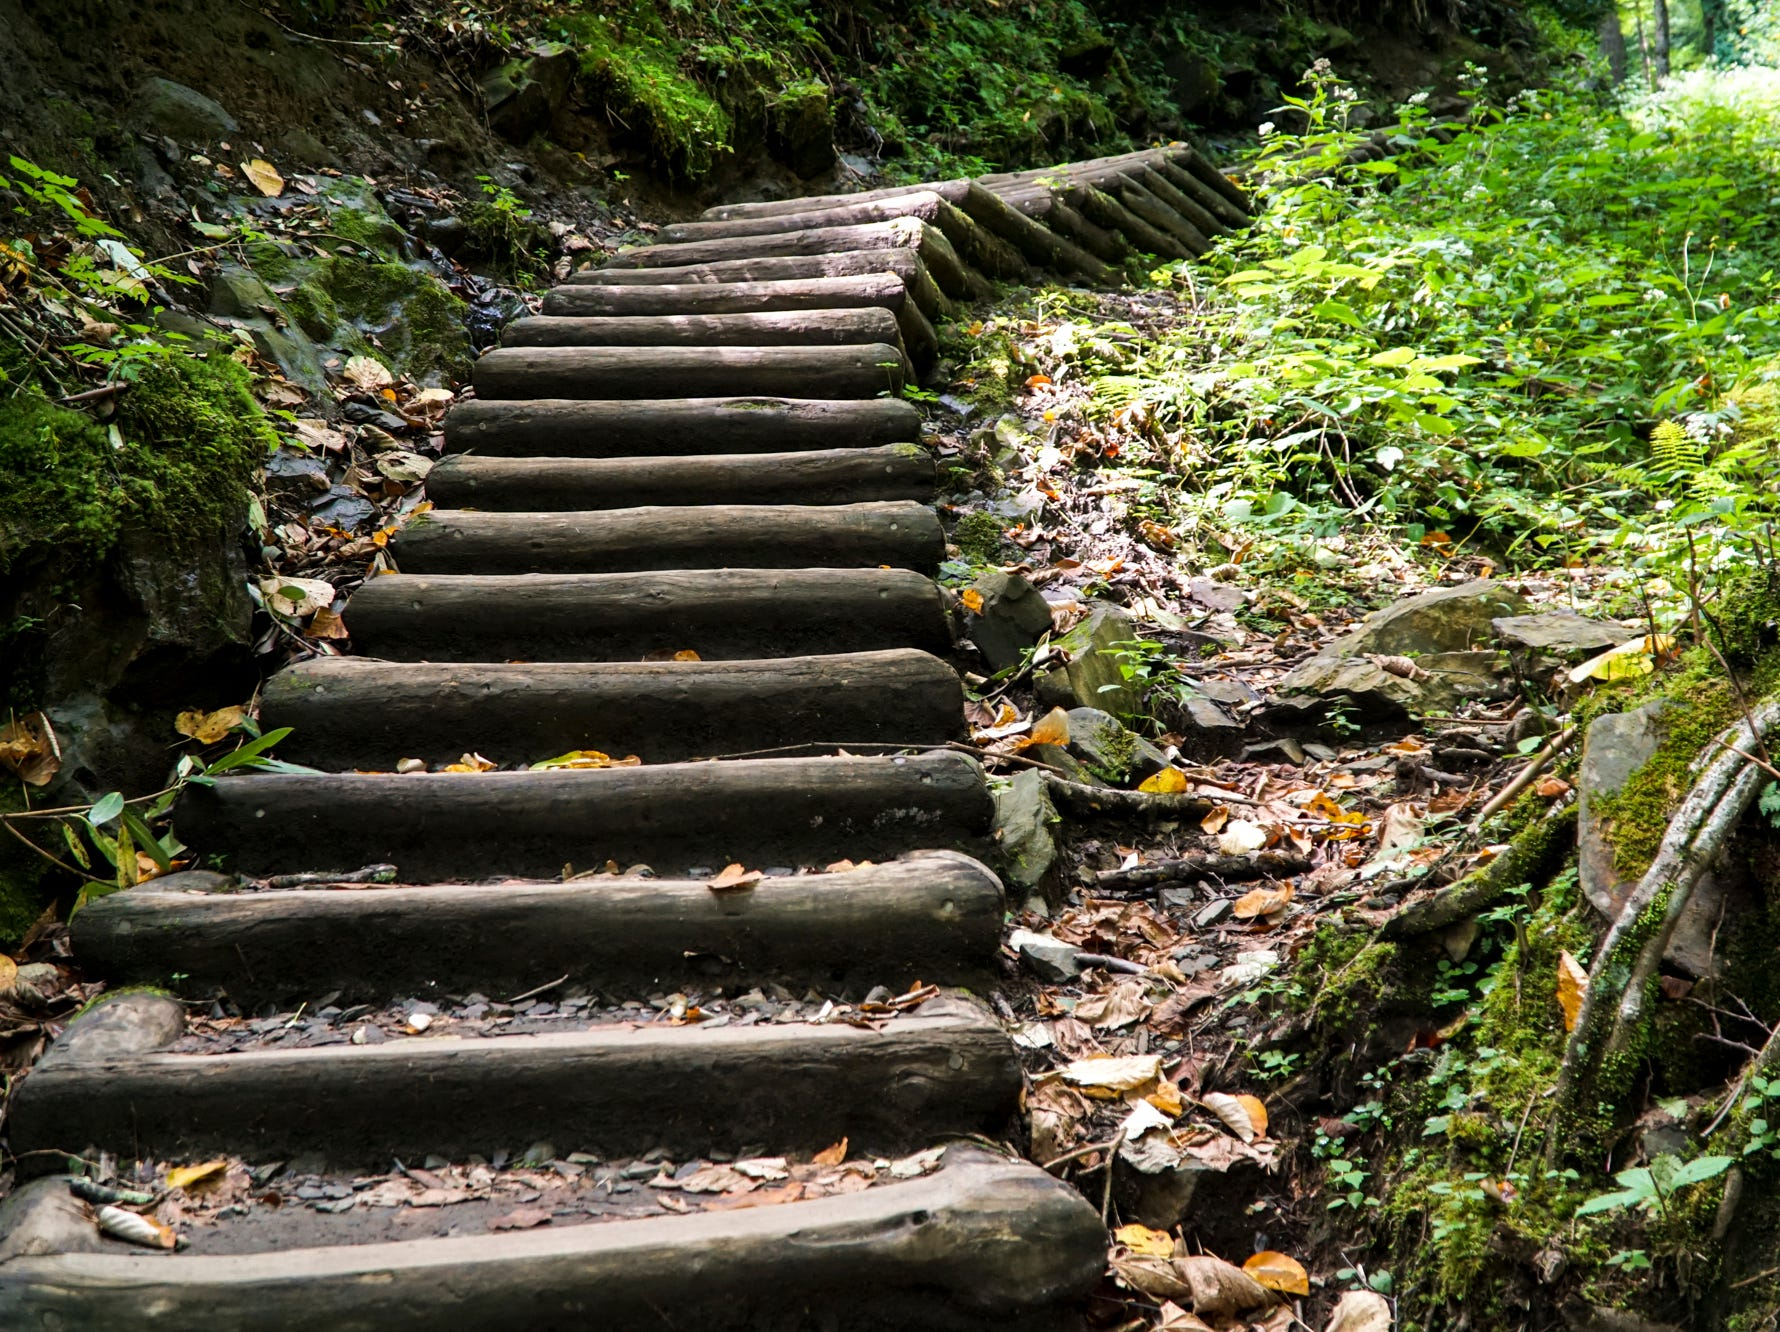 Hundreds of wooden stairs line the Chimney Tops trail, which climbs over 1400 feet.